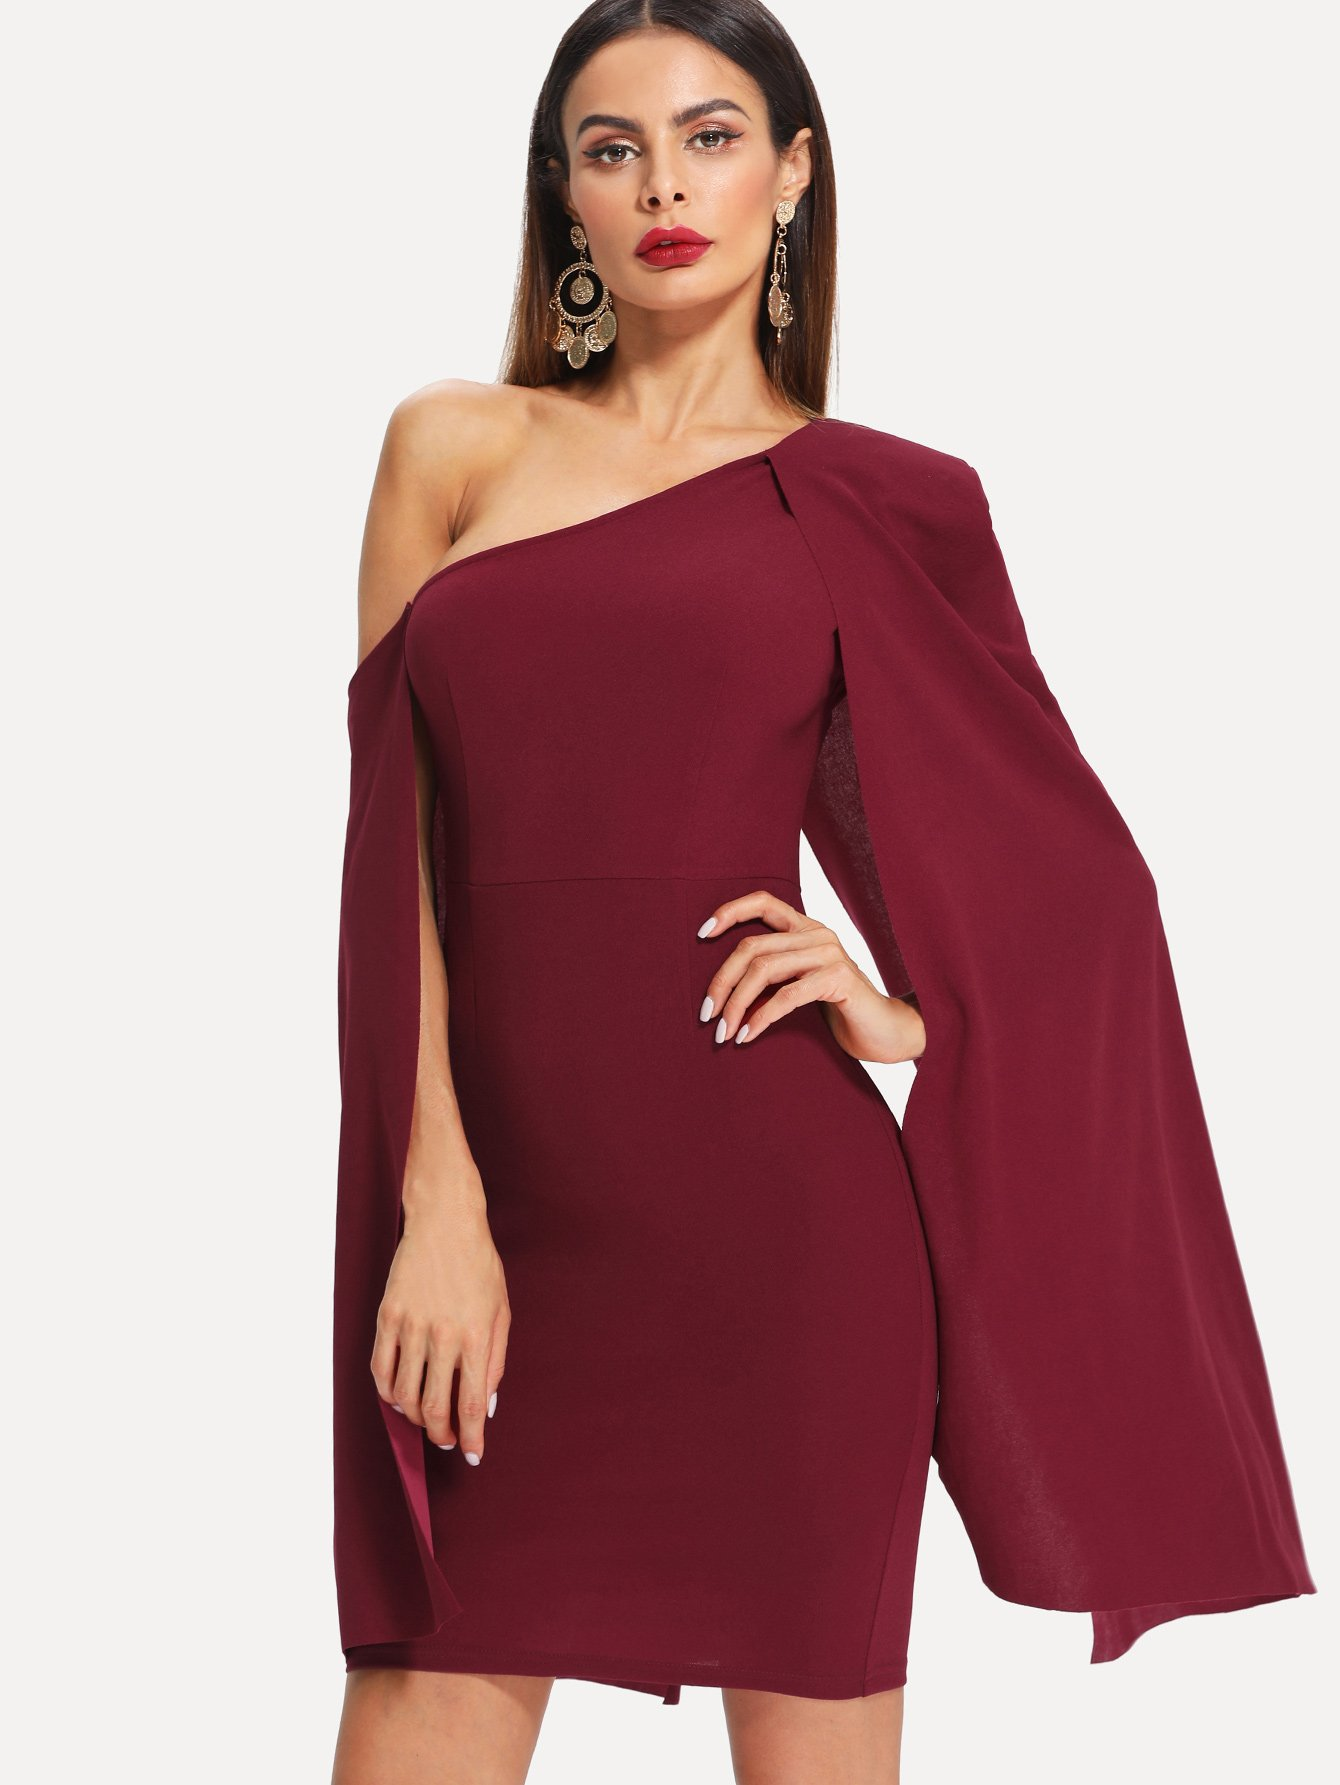 Asymmetrical Neck Cape Sleeve Dress plunging neck cape sleeve print dress